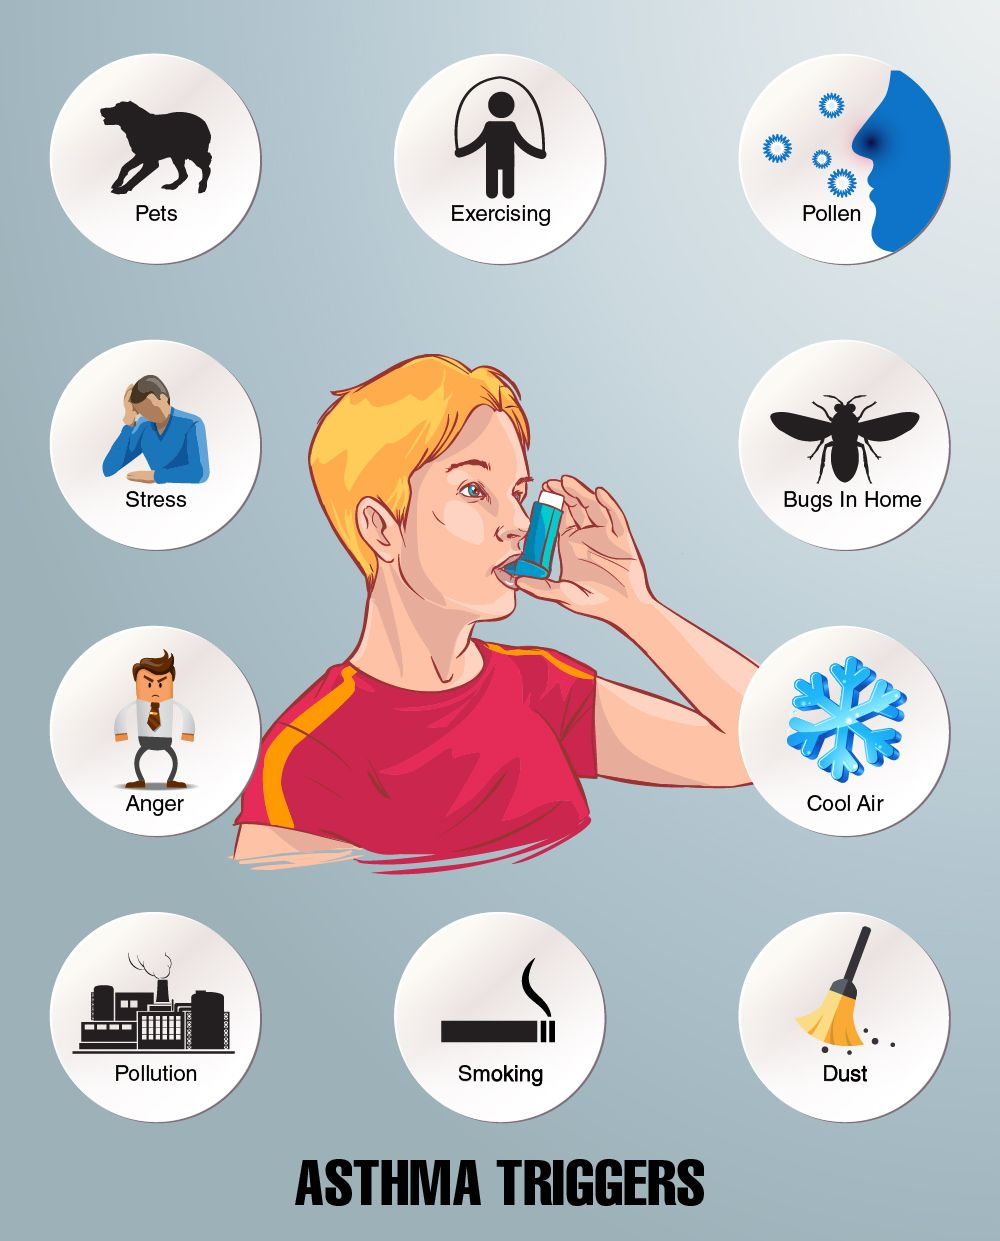 9 Home Products With Hidden Asthma Triggers 9 Home Products With Hidden Asthma Triggers new foto